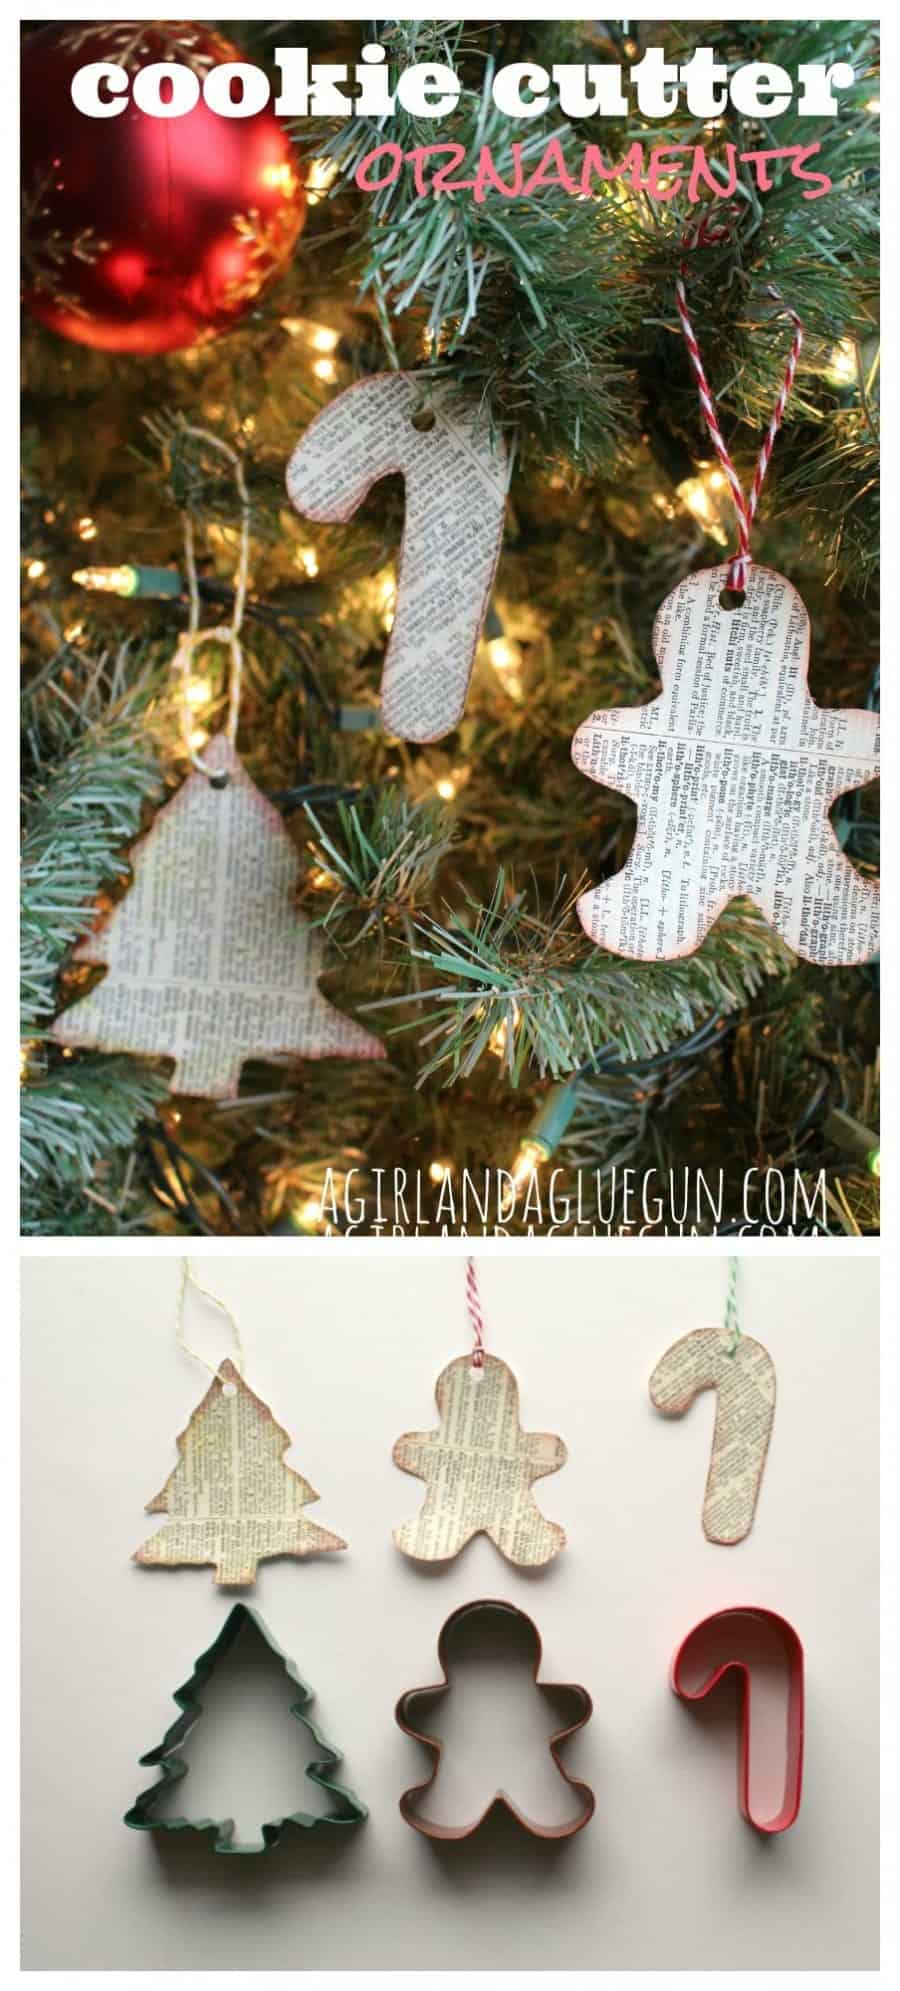 cookie cutter ornaments --easy kids crafts!